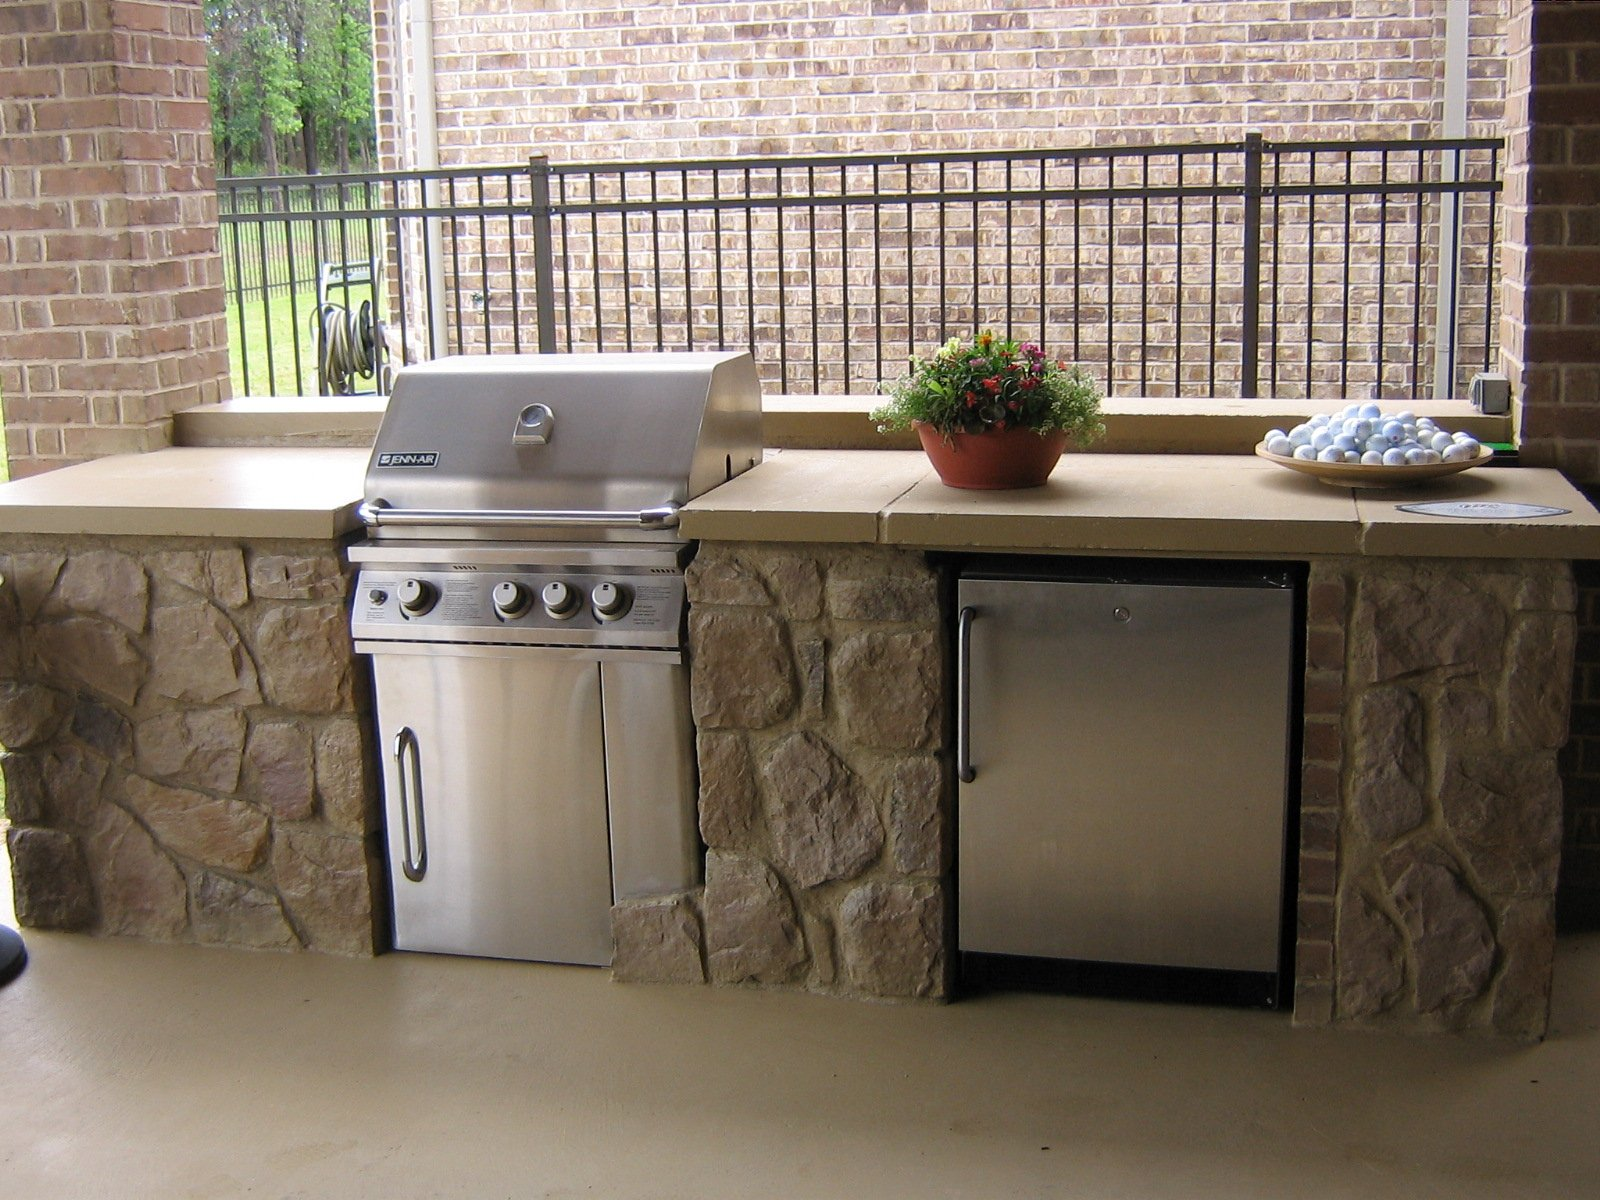 Outdoor kitchen grill bar pictures to pin on pinterest for Outdoor kitchen grill cabinets